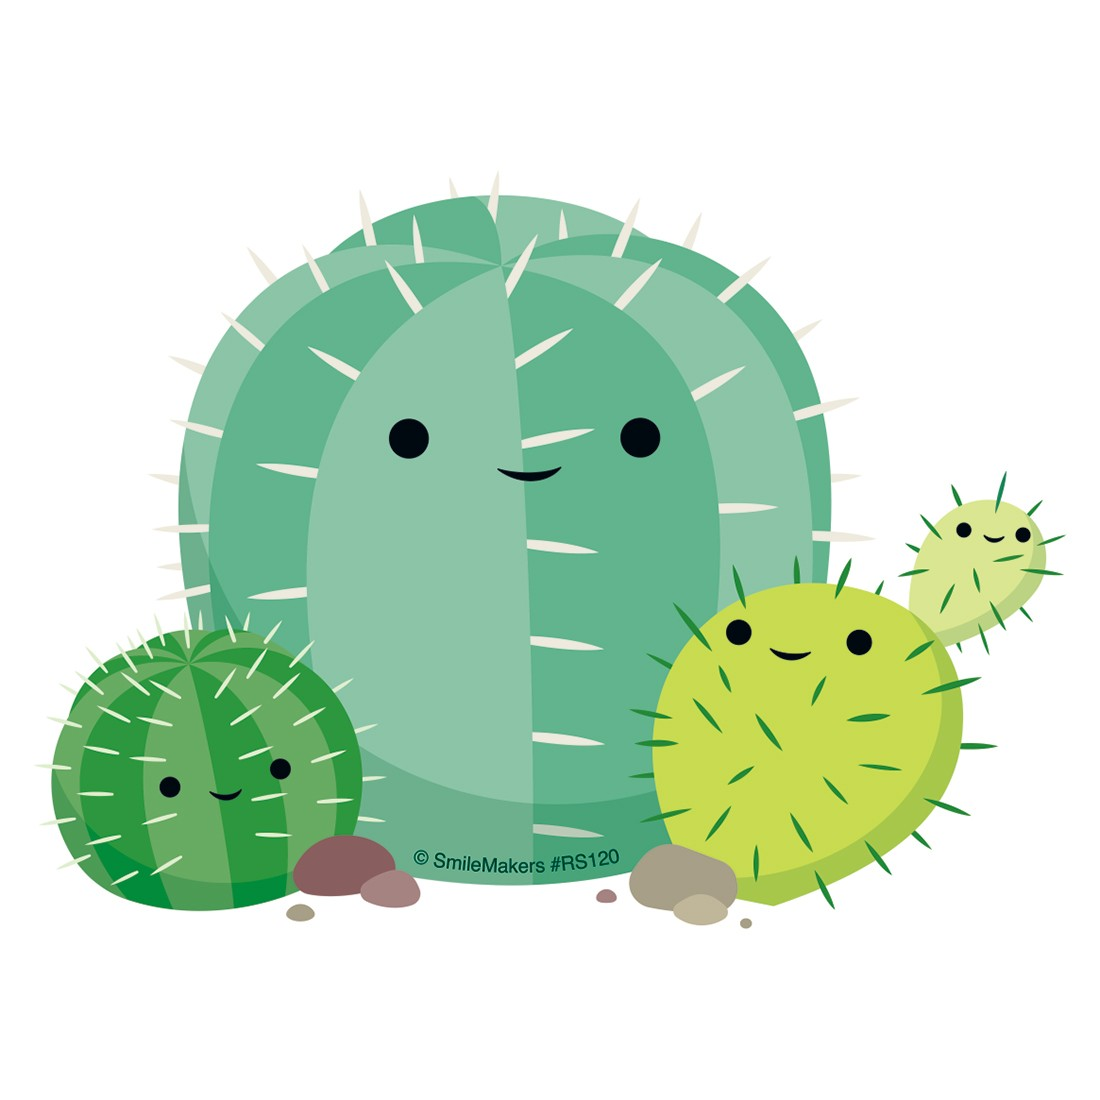 Cute Cactus Re-Stickable Stickers [image]